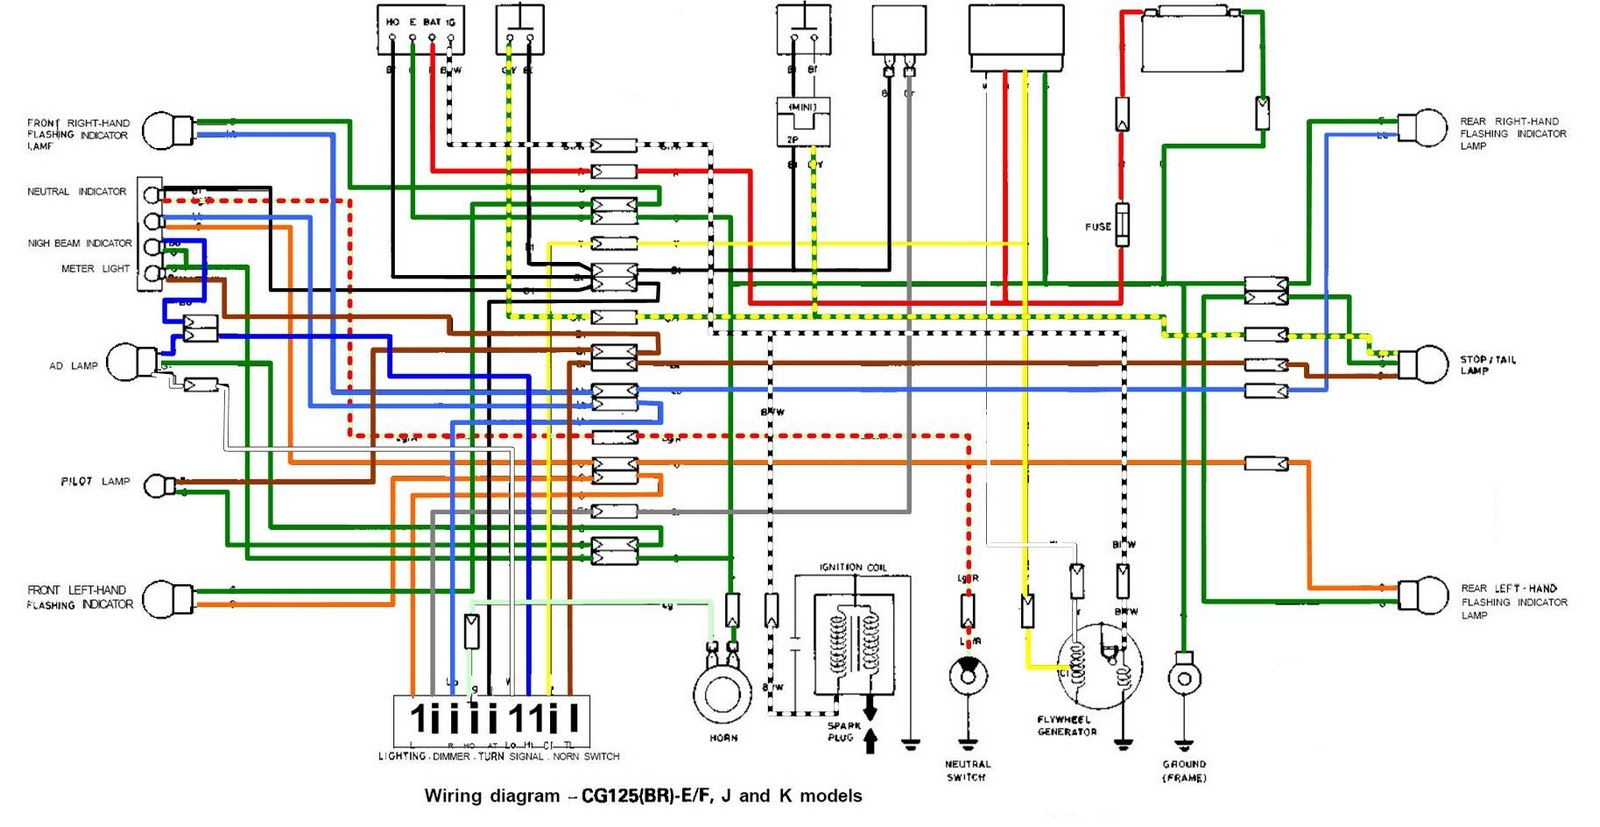 wiring diagrams for a honda 70 free download wiring diagram for 97 chevy cavalier free download #7